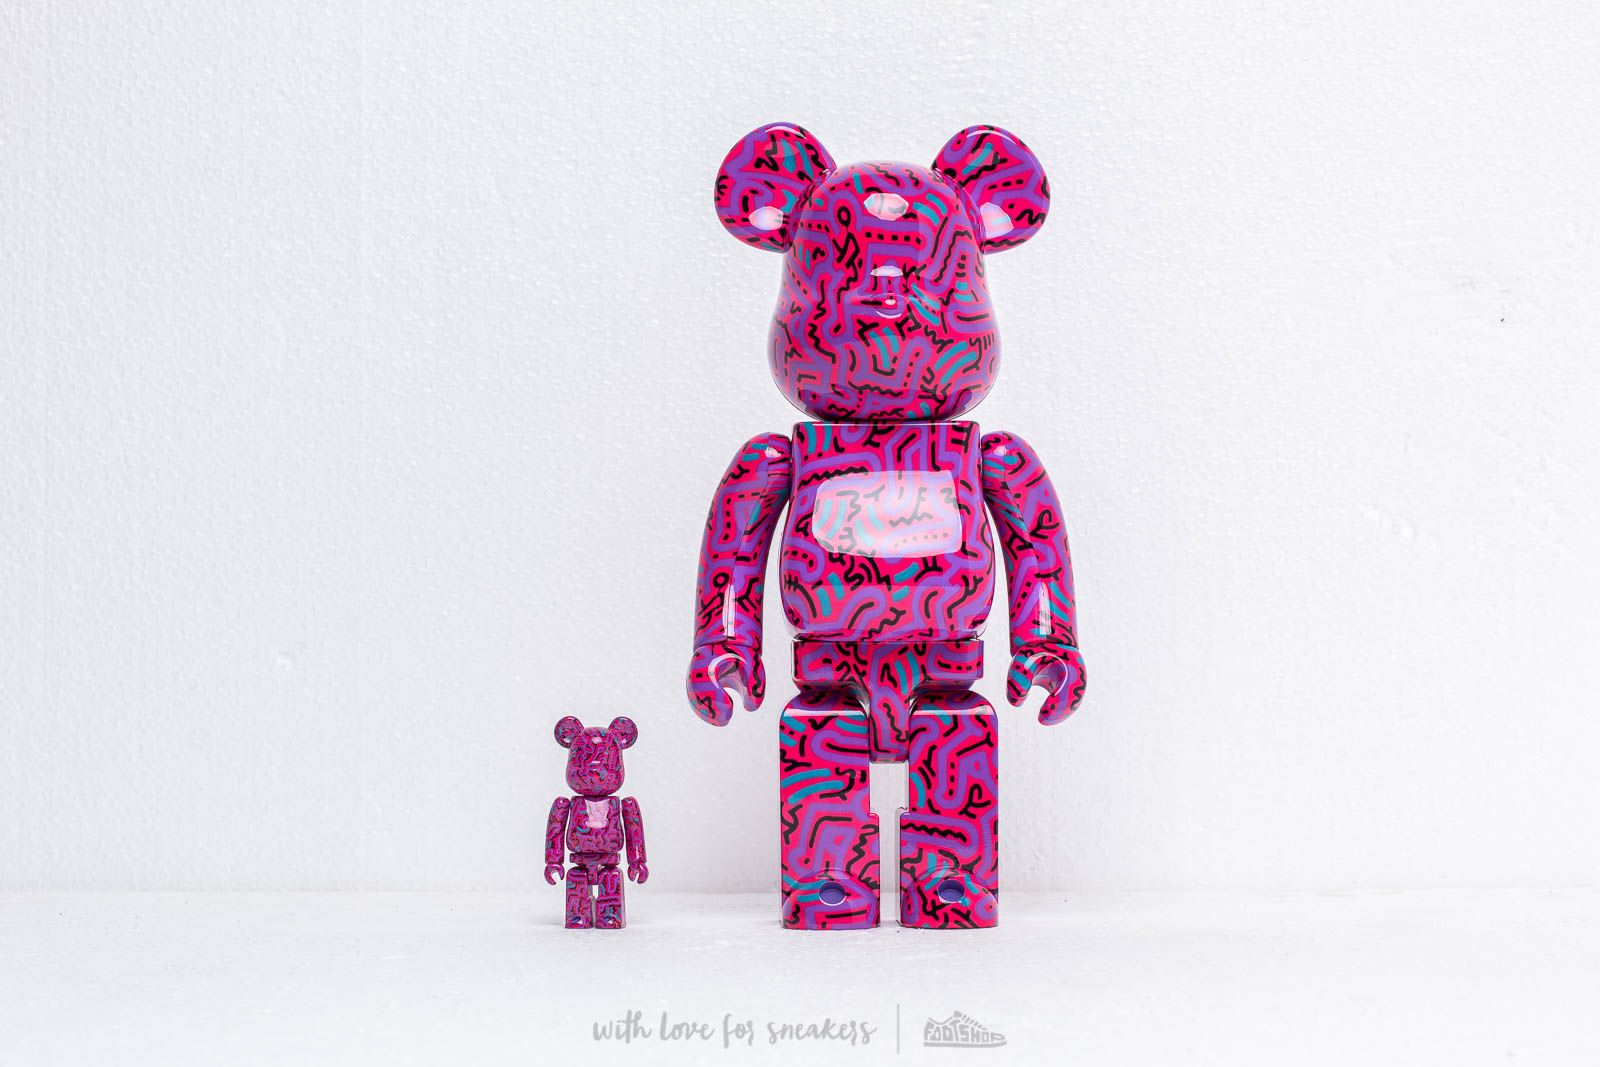 Medicom Toy Be@rBrick Keith Haring 100% & 400% Set